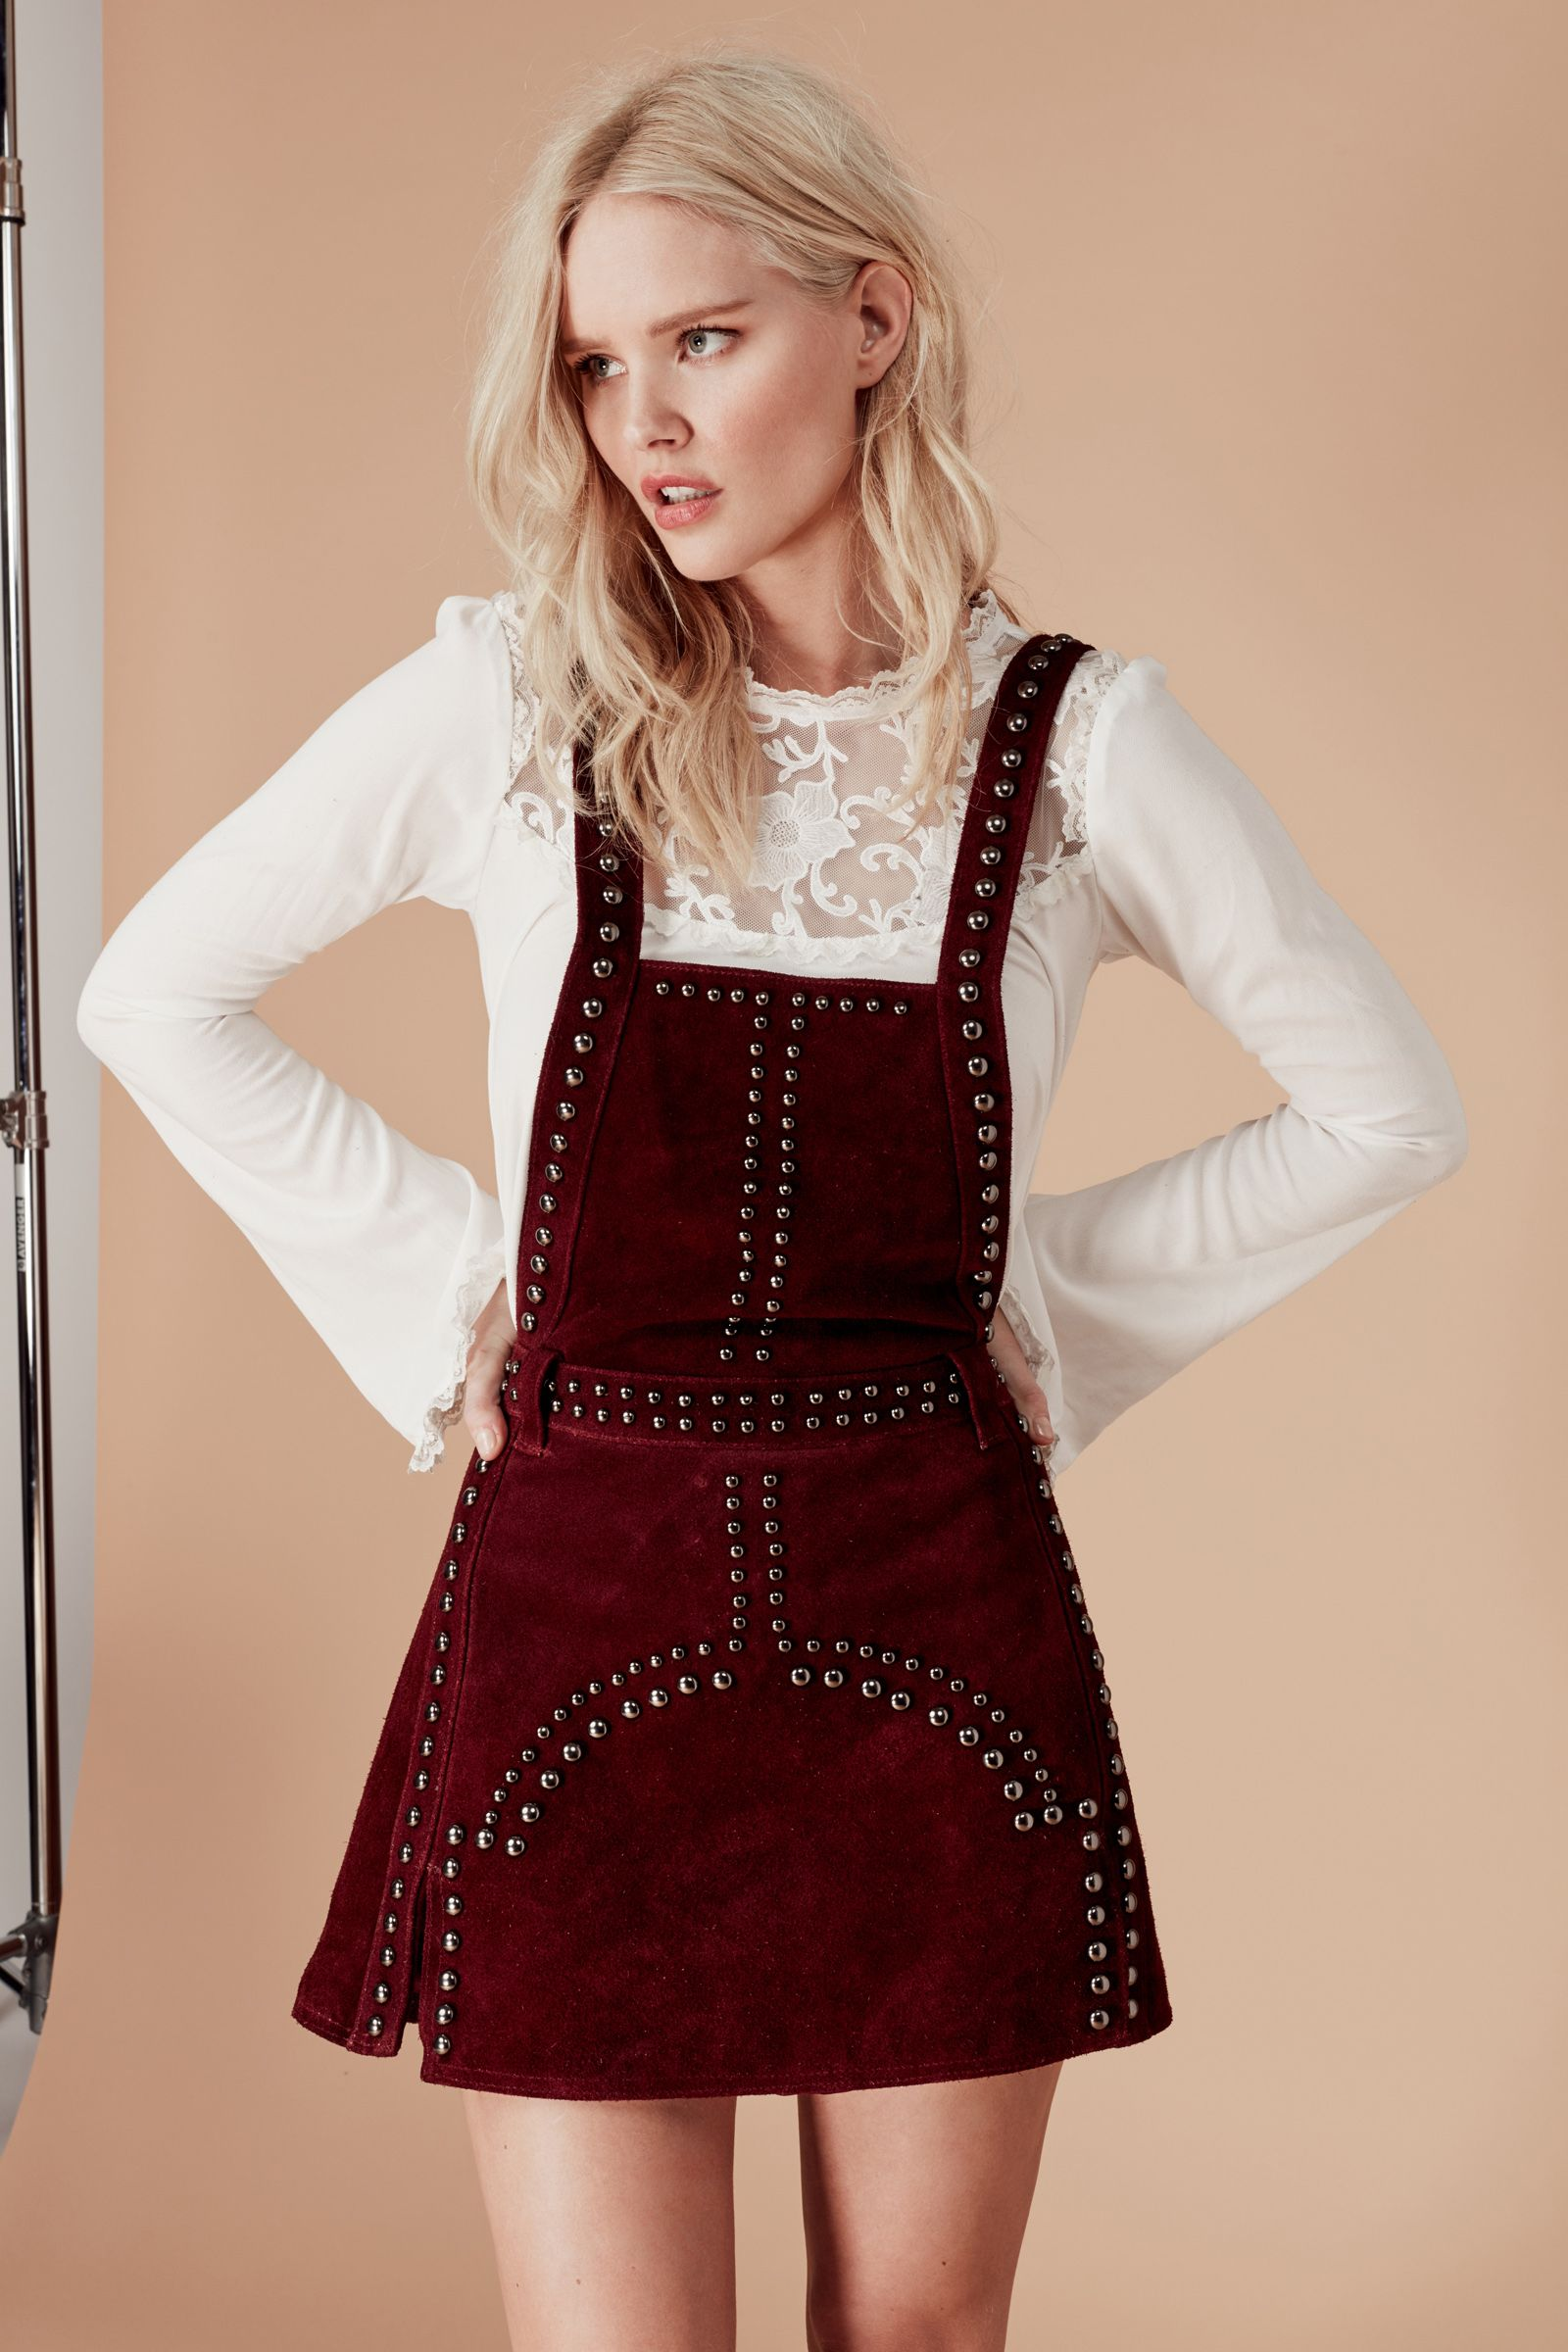 JAMESON LEATHER OVERALL DRESS Overall dress, Dresses